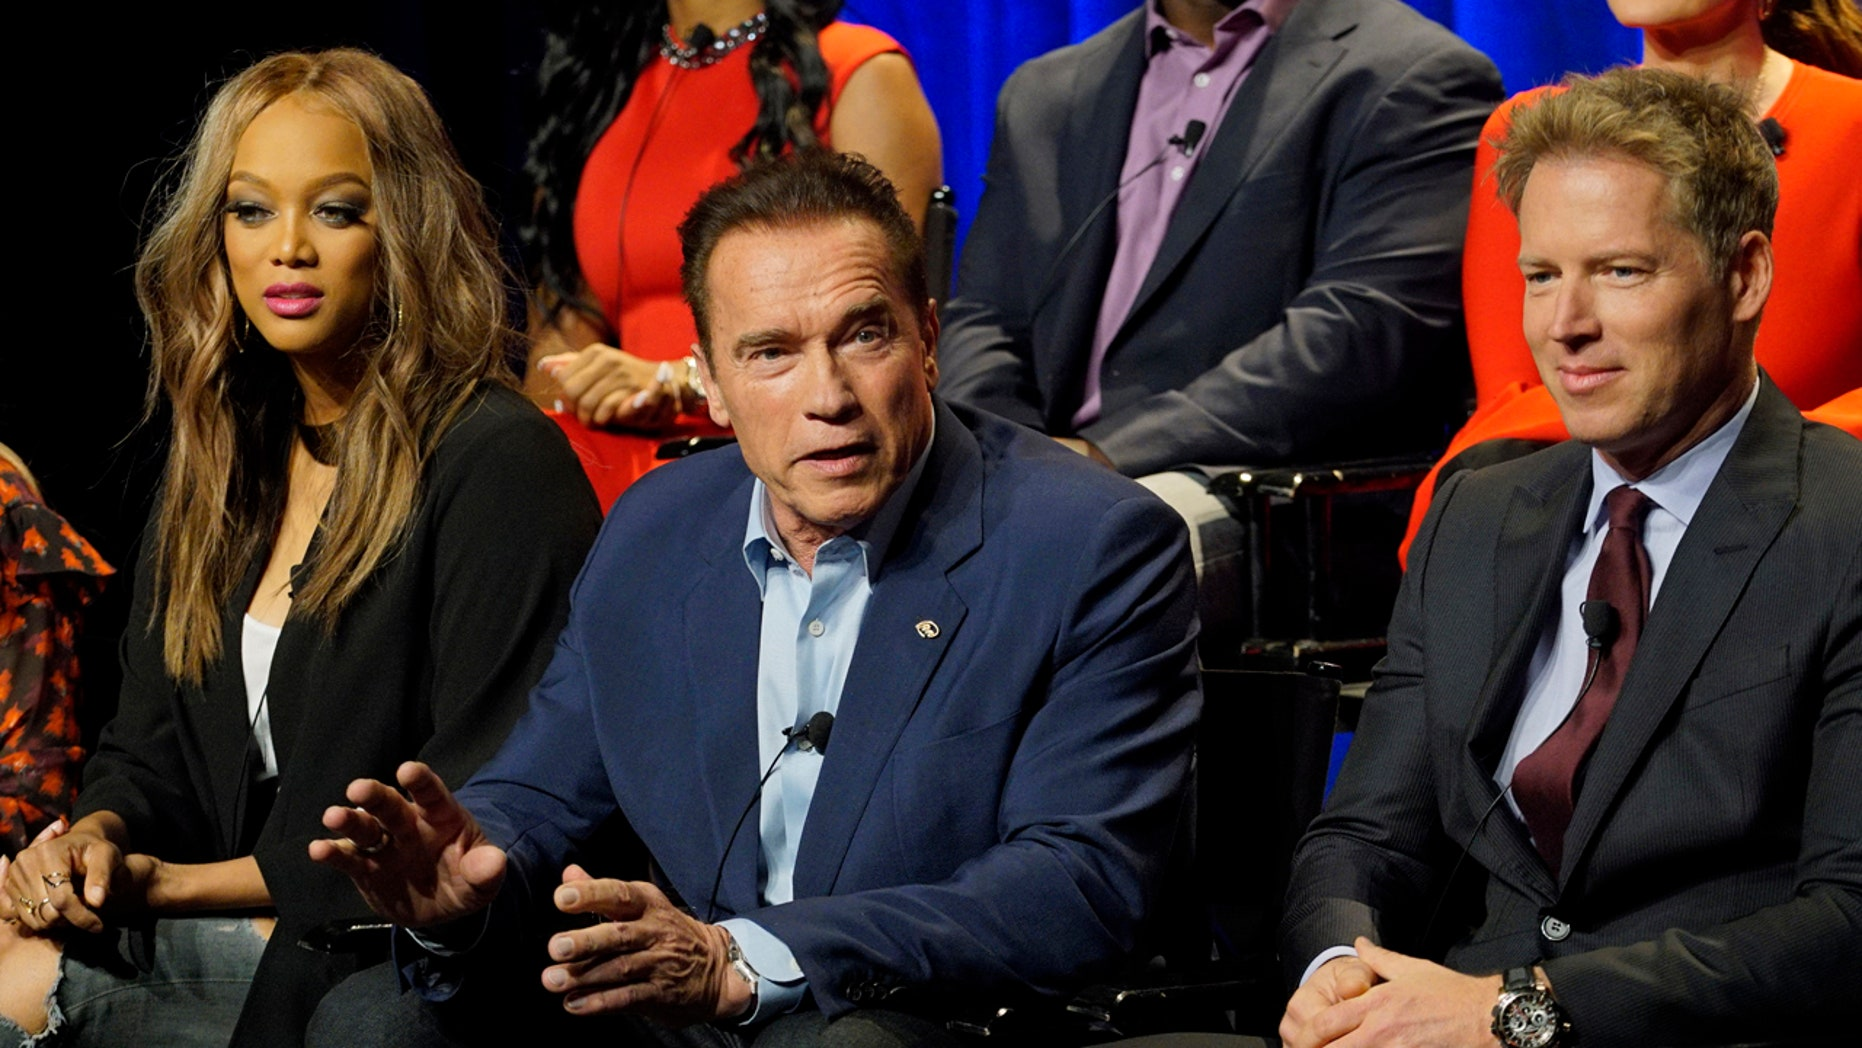 """In this Friday, Dec. 9, 2016 photo provided by NBC, Tyra Banks, from left, Arnold Schwarzenegger, Patrick Knapp Schwarzenegger attend a press junket for """"The New Celebrity Apprentice,"""" in Los Angeles."""